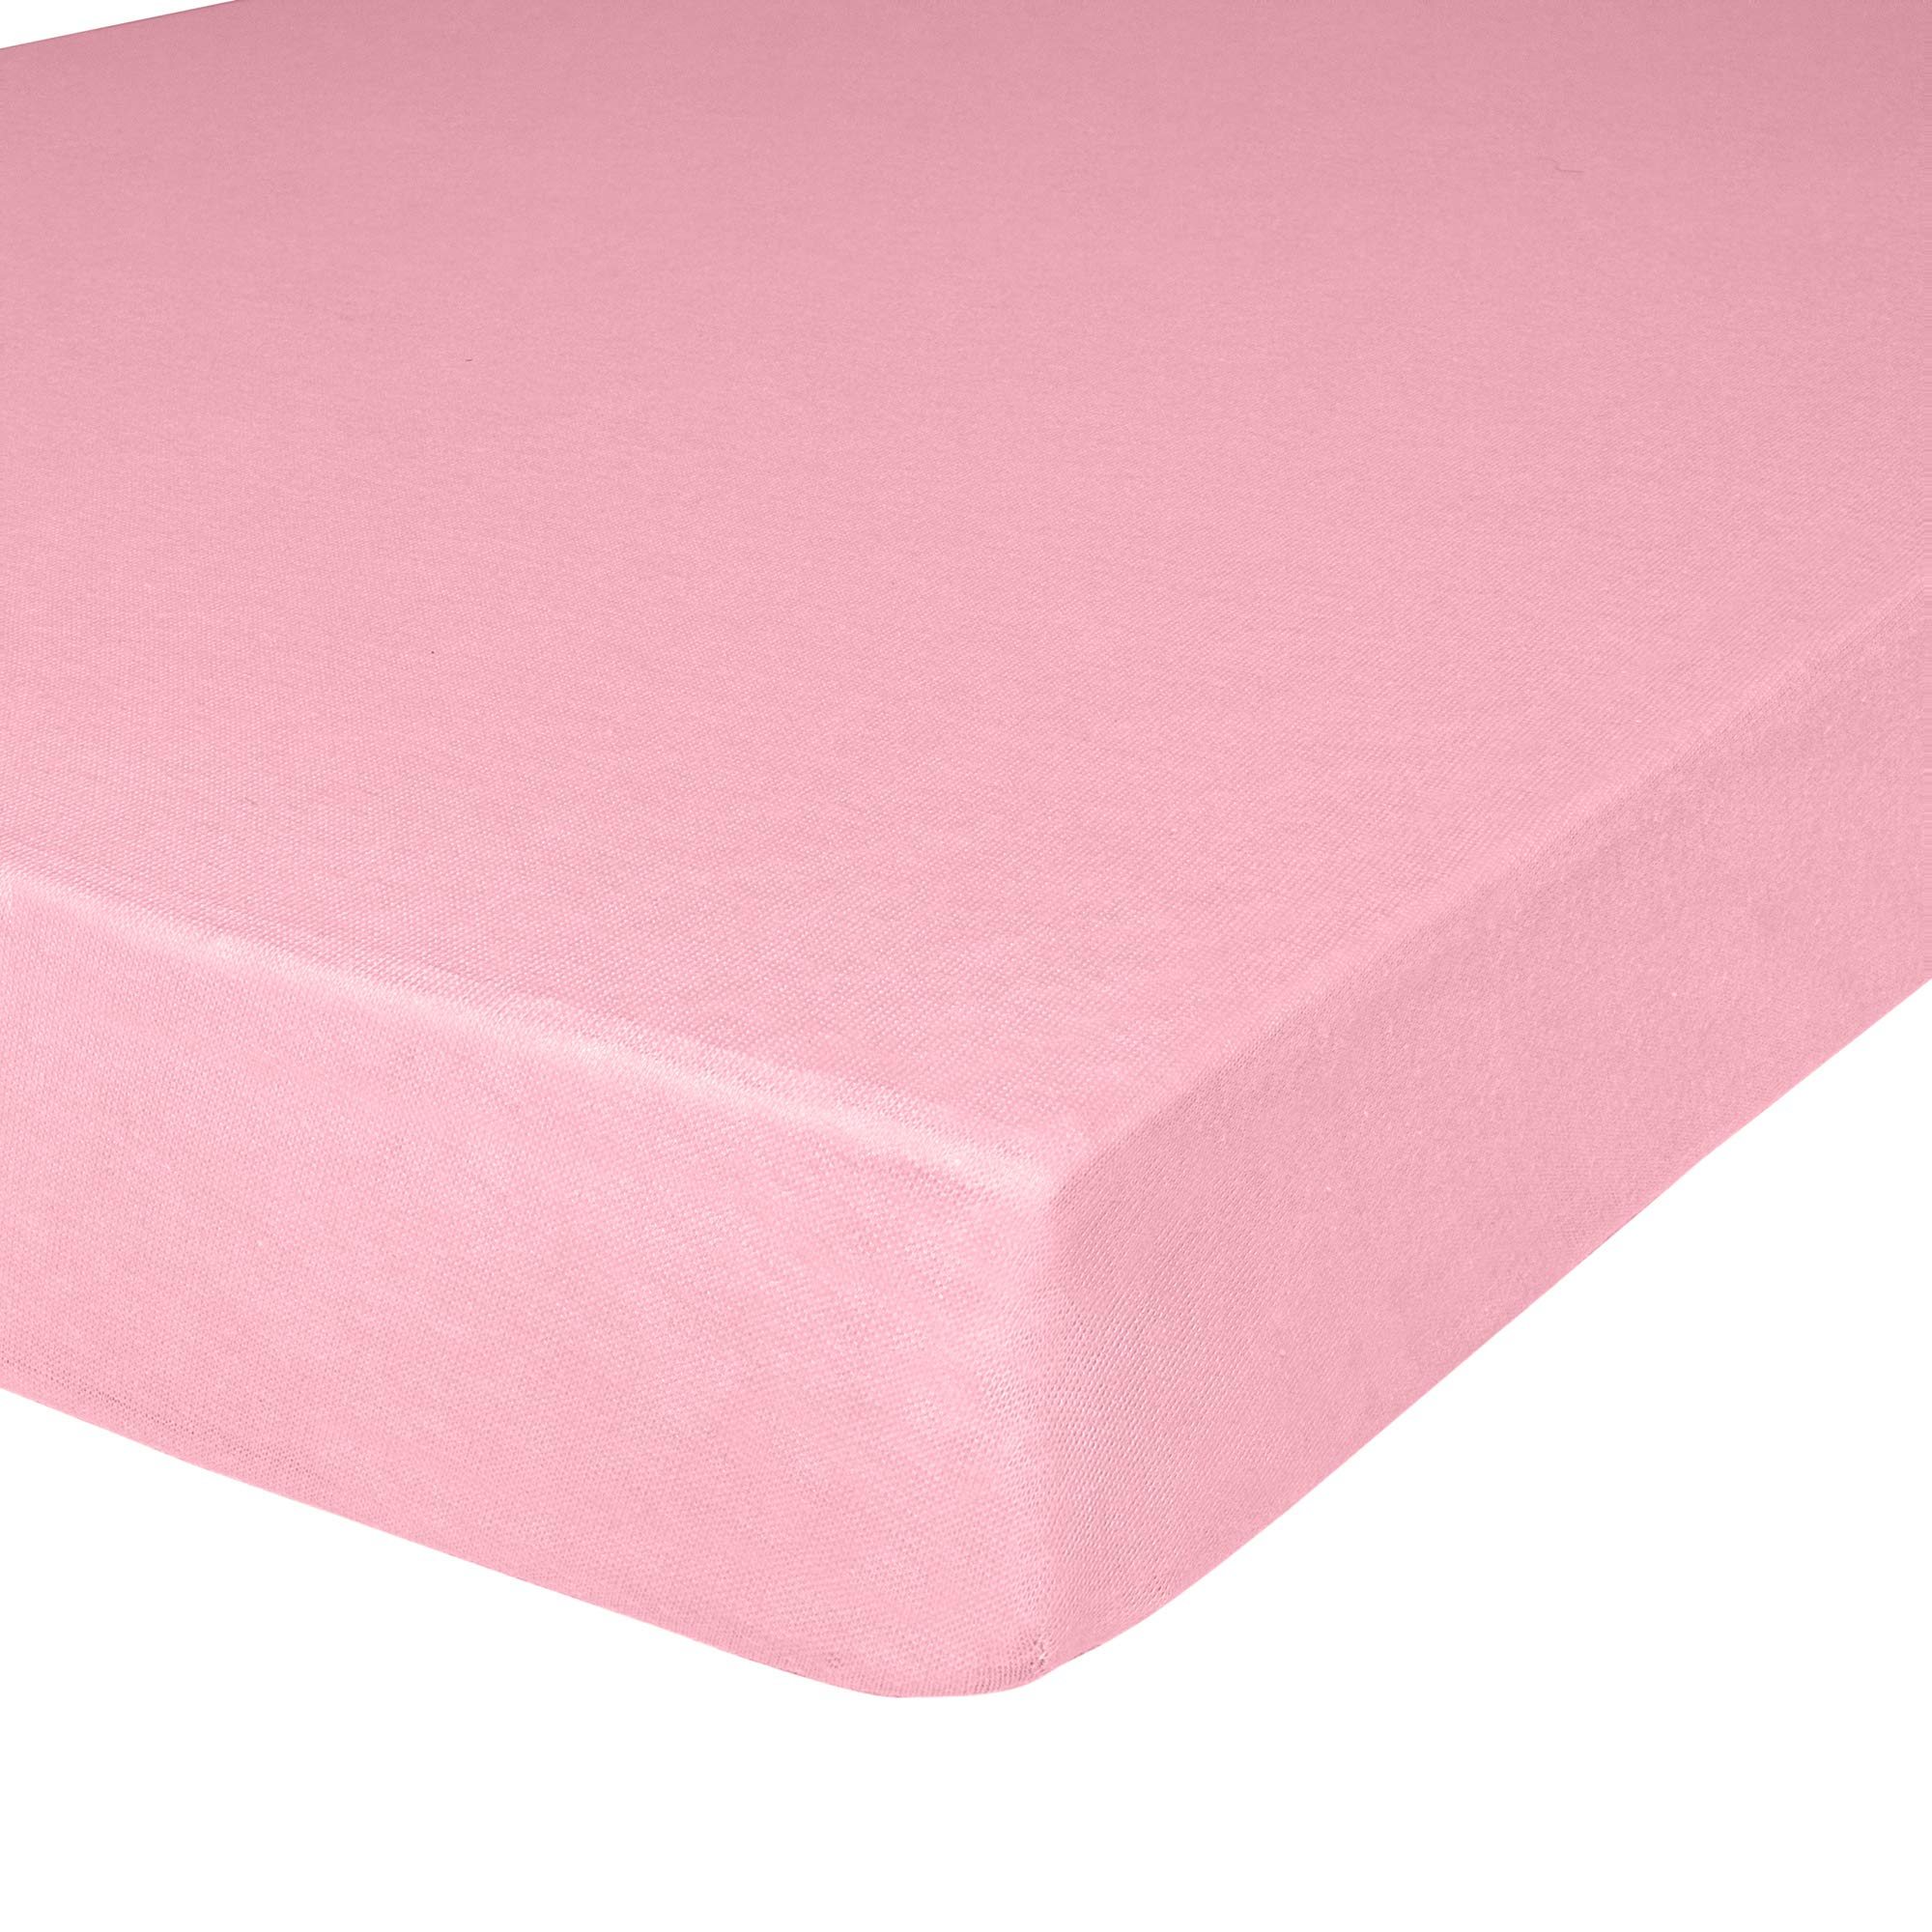 IDEAhome Jersey Knit Twin Size Fitted Bottom Sheet, 39'' X 75'' with 14'' Deep Pocket, Ideal for Twin Bed Mattress, Hypoallergenic, Pink, Pack of 1